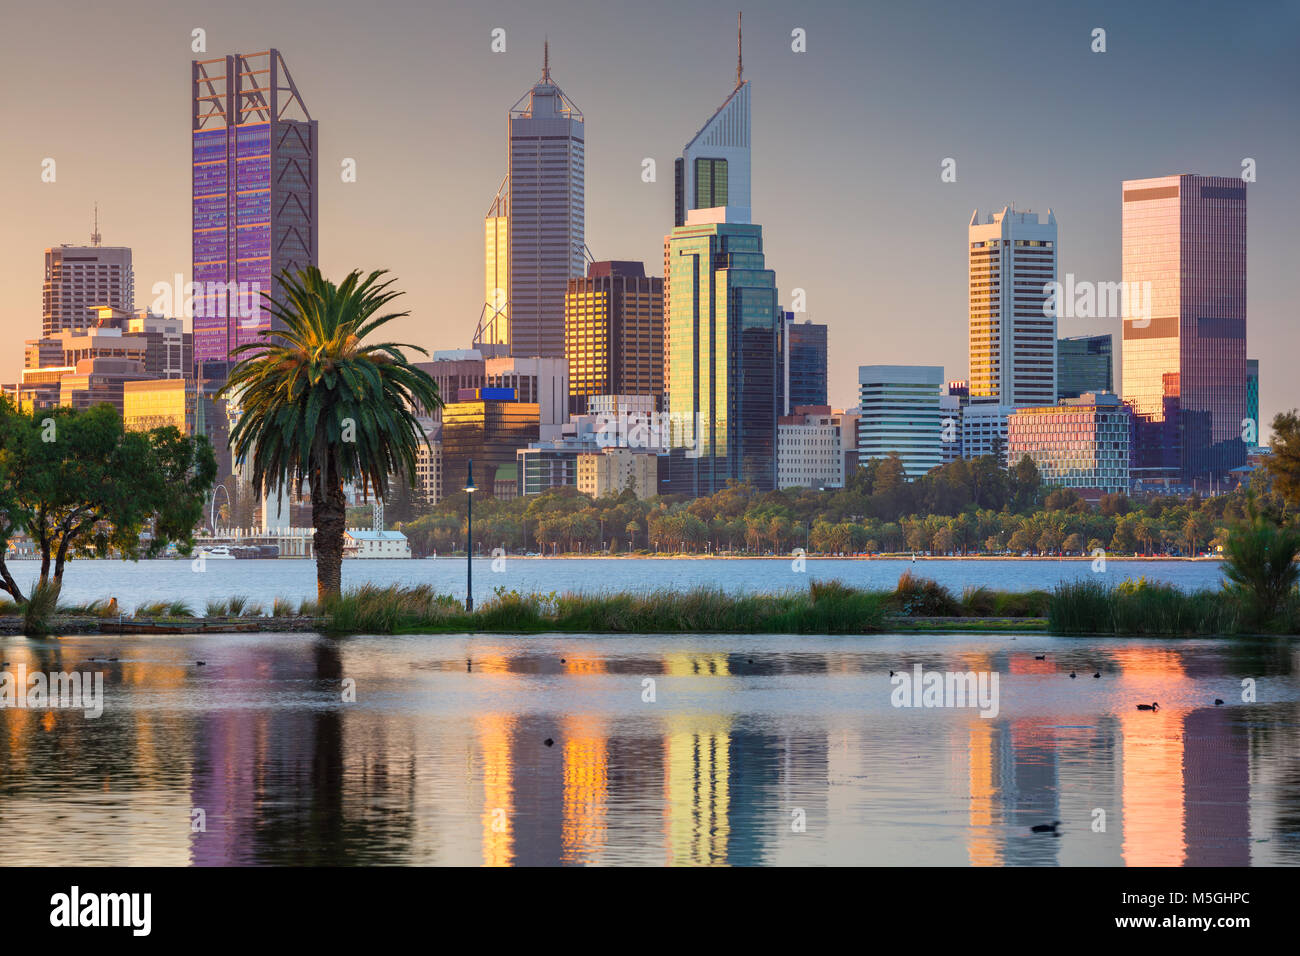 Perth. Cityscape image of Perth skyline, Australia during sunset. - Stock Image